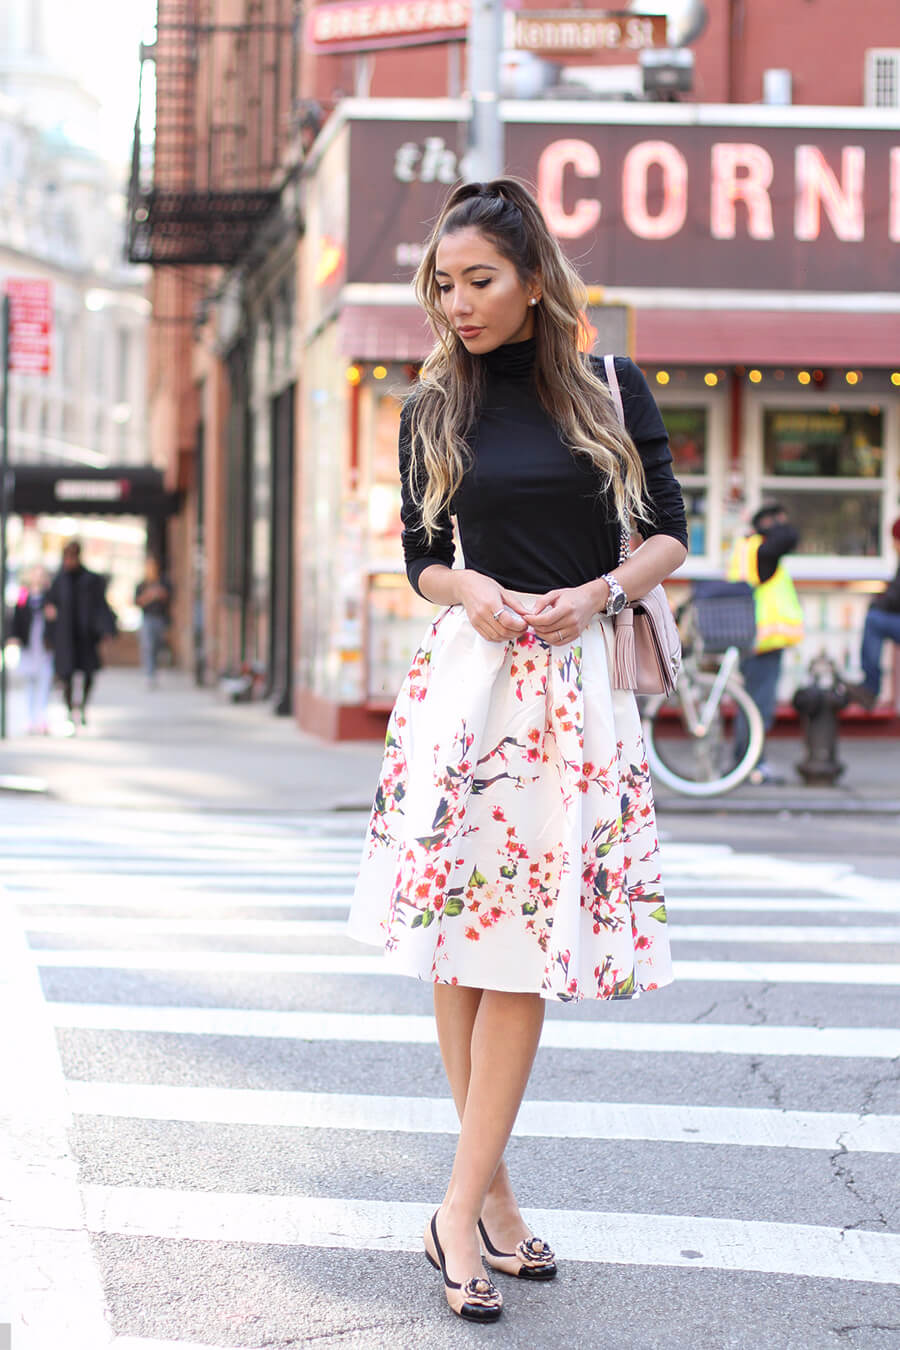 Ulia Ali in black turtleneck, floral skirt and pastel accessories.